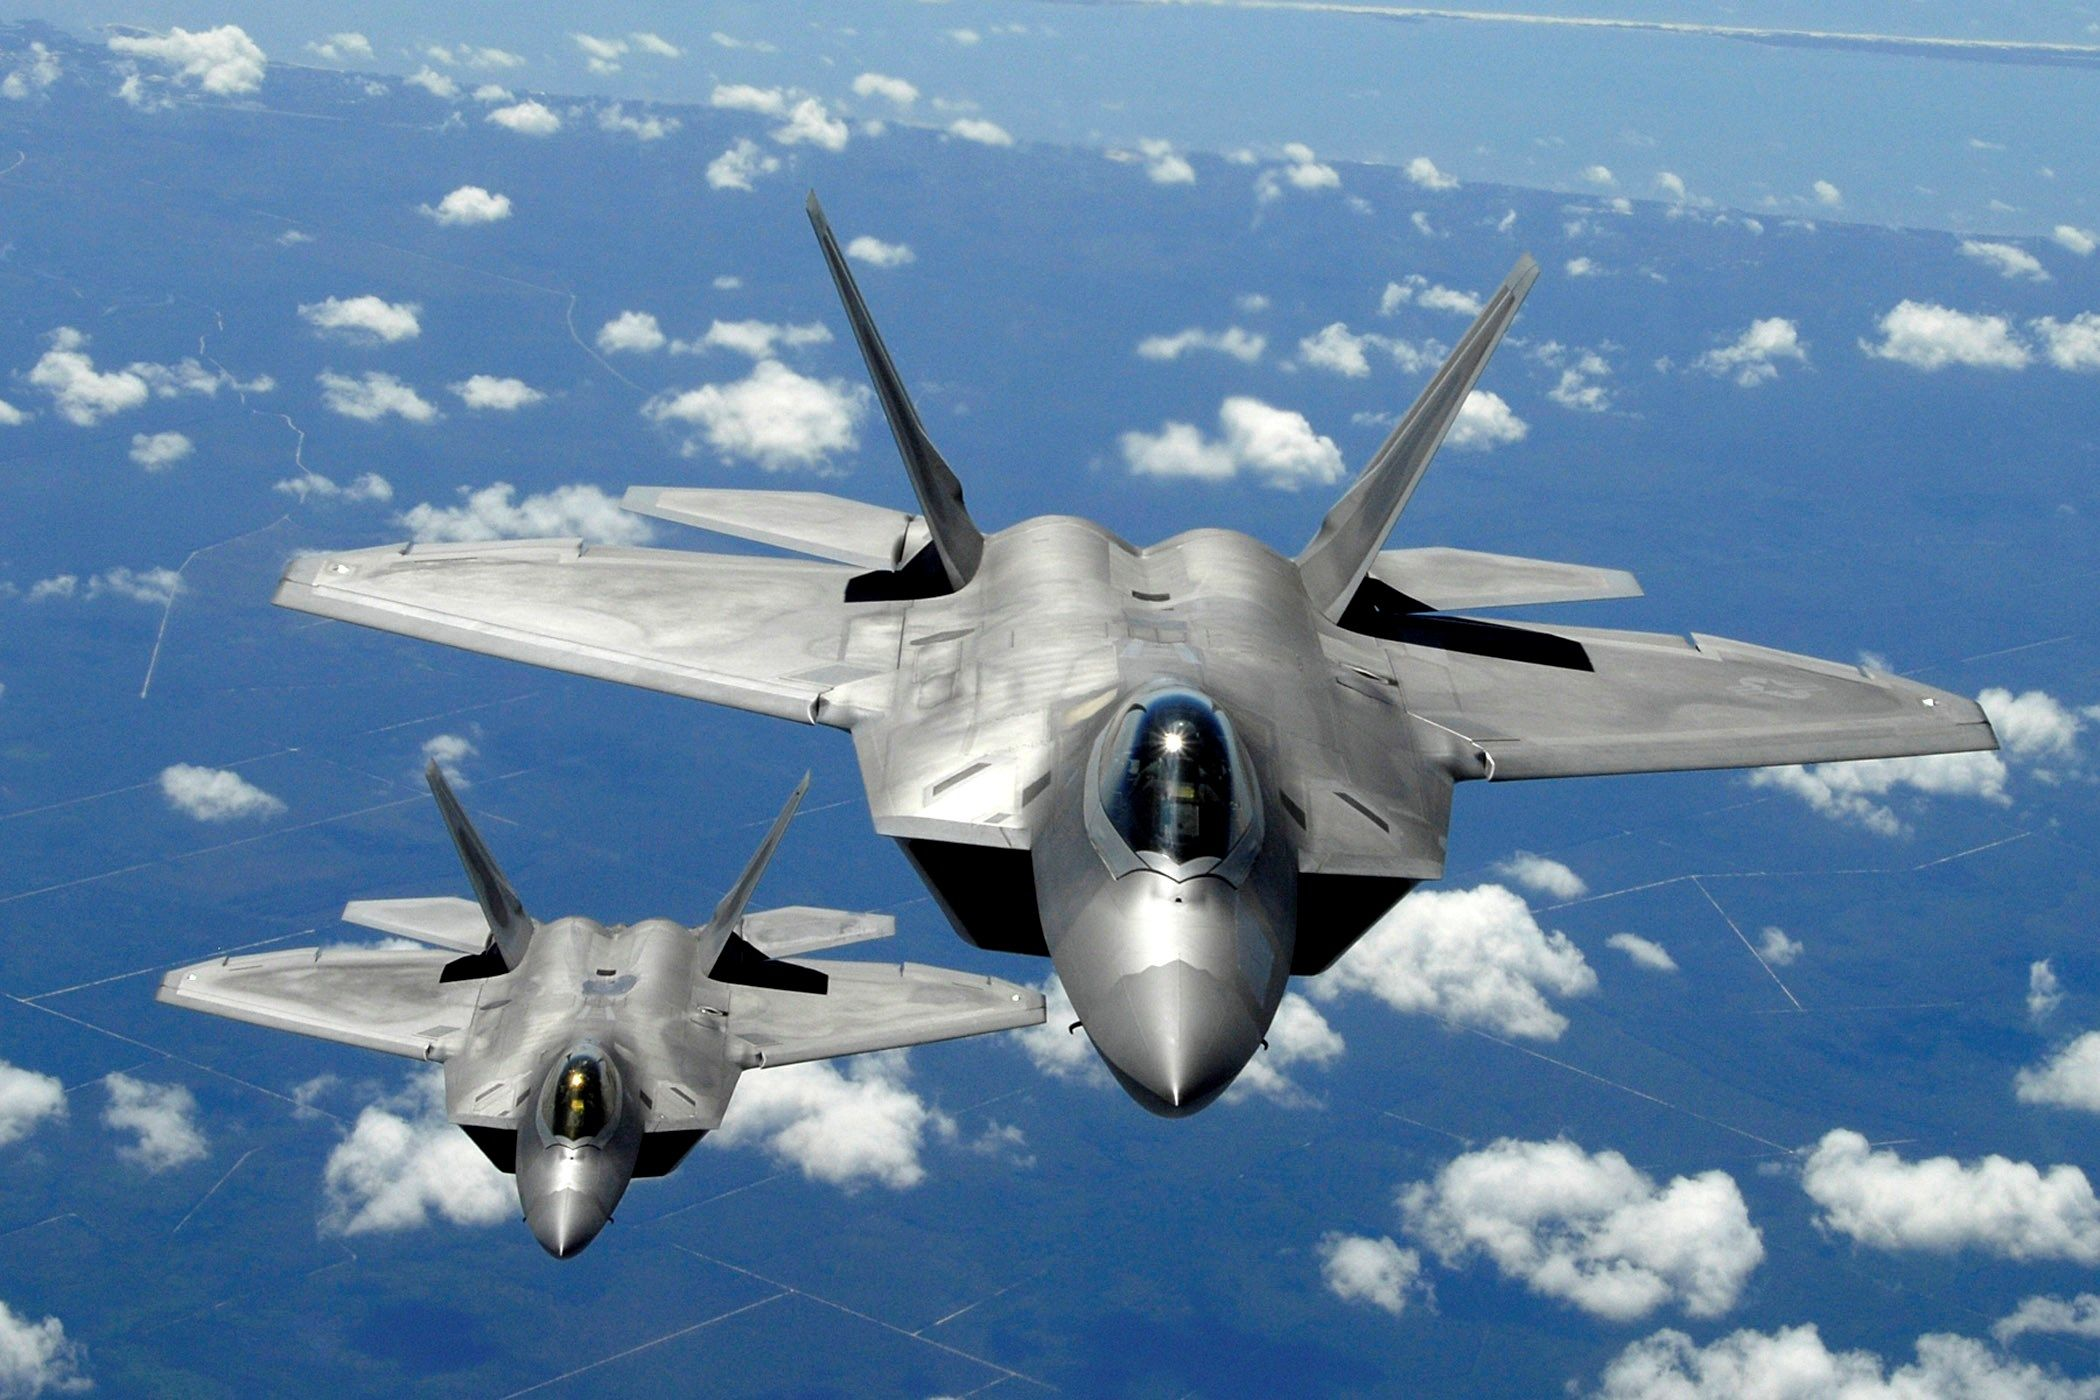 Lockheed Martin F 22 Raptor Picture High Definition Backgrounds Lockheed Martin F 22 Raptor Category Fighter Jets Air Fighter Military Aircraft